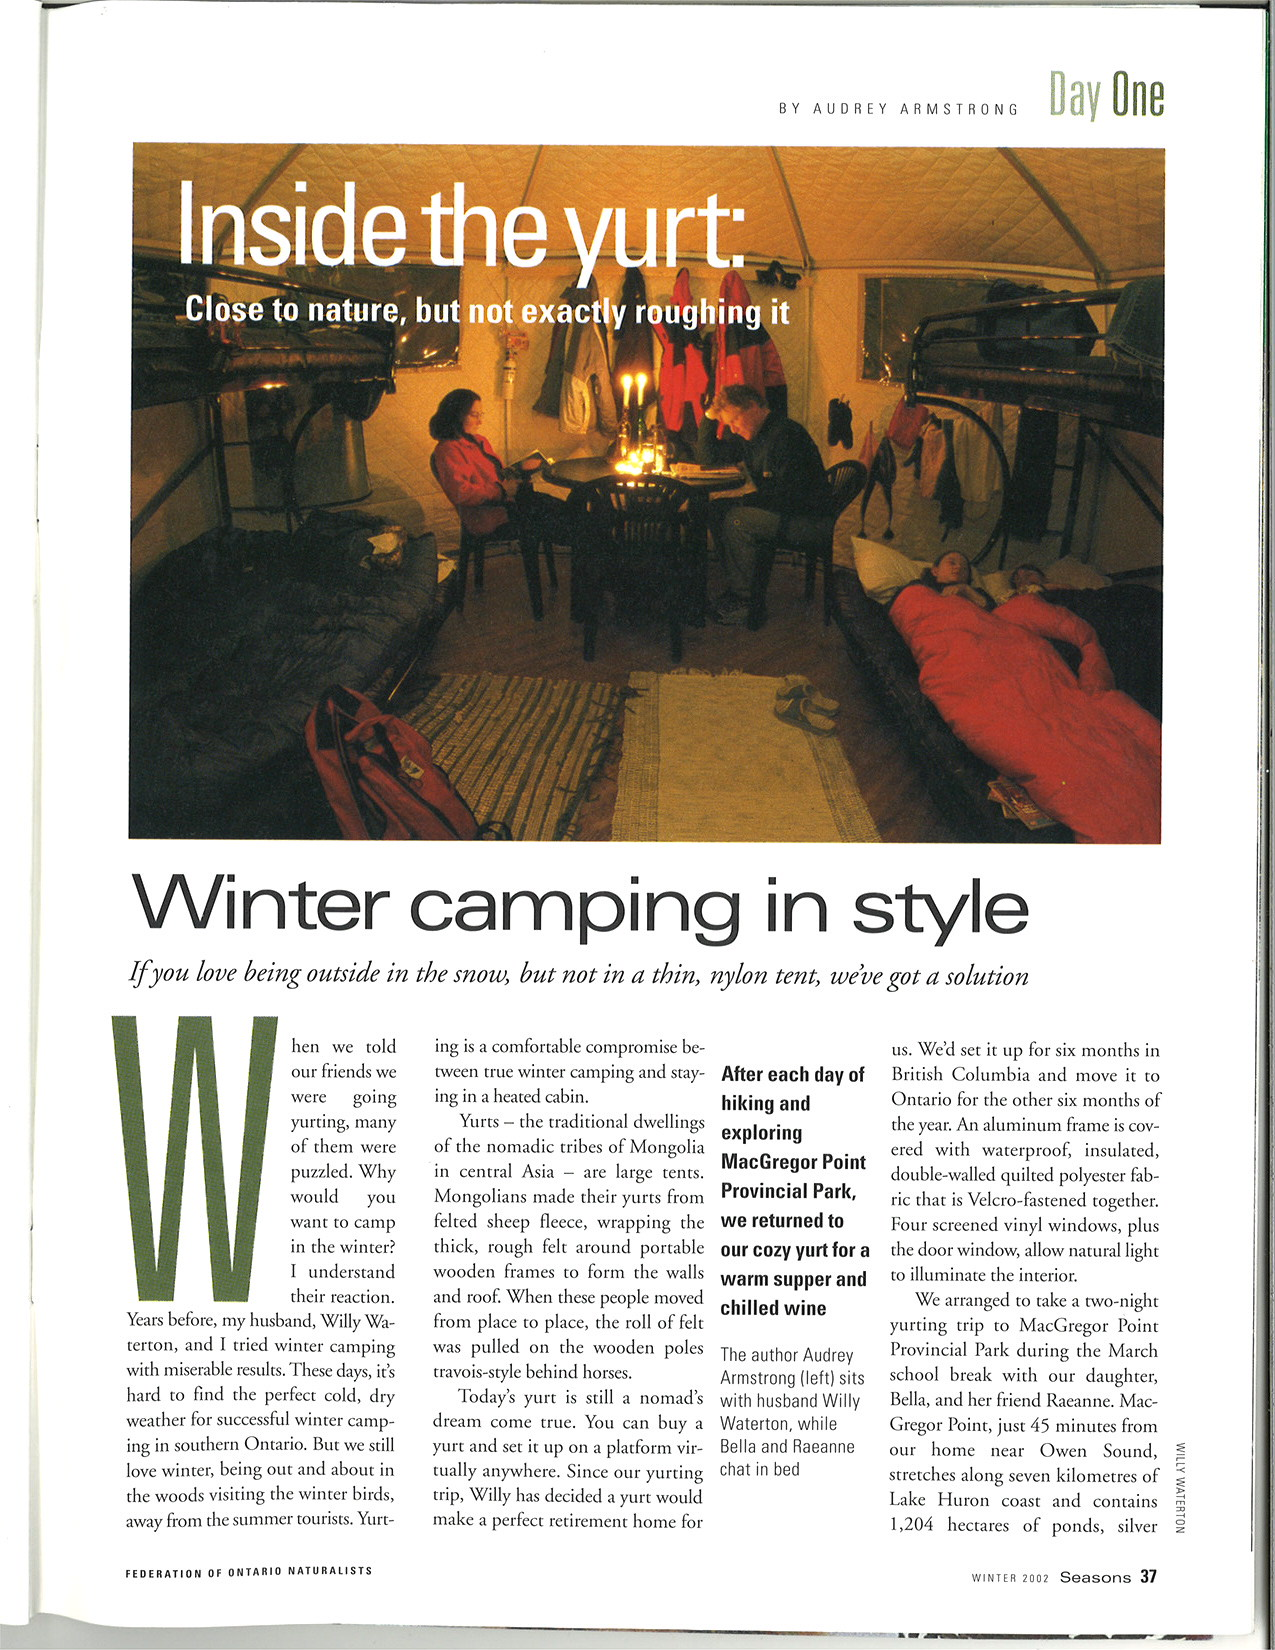 Day One: Inside the yurt